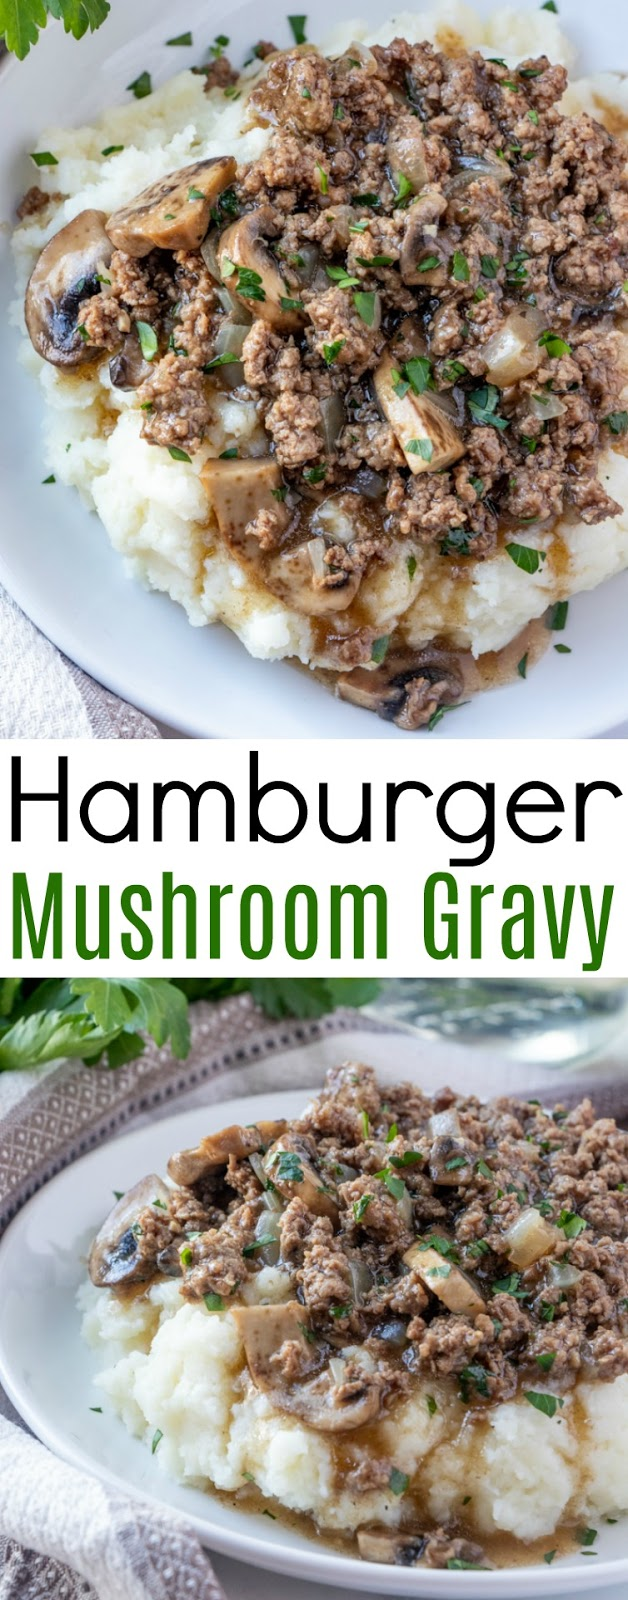 This meat and potatoes comfort food just like grandma used to make is the perfect easy dinner idea! Ready in less than 30 minutes and great served over mashed potatoes, baked potatoes, cooked rice or egg noodles! The mushrooms, onion and garlic add so much delicious flavor!